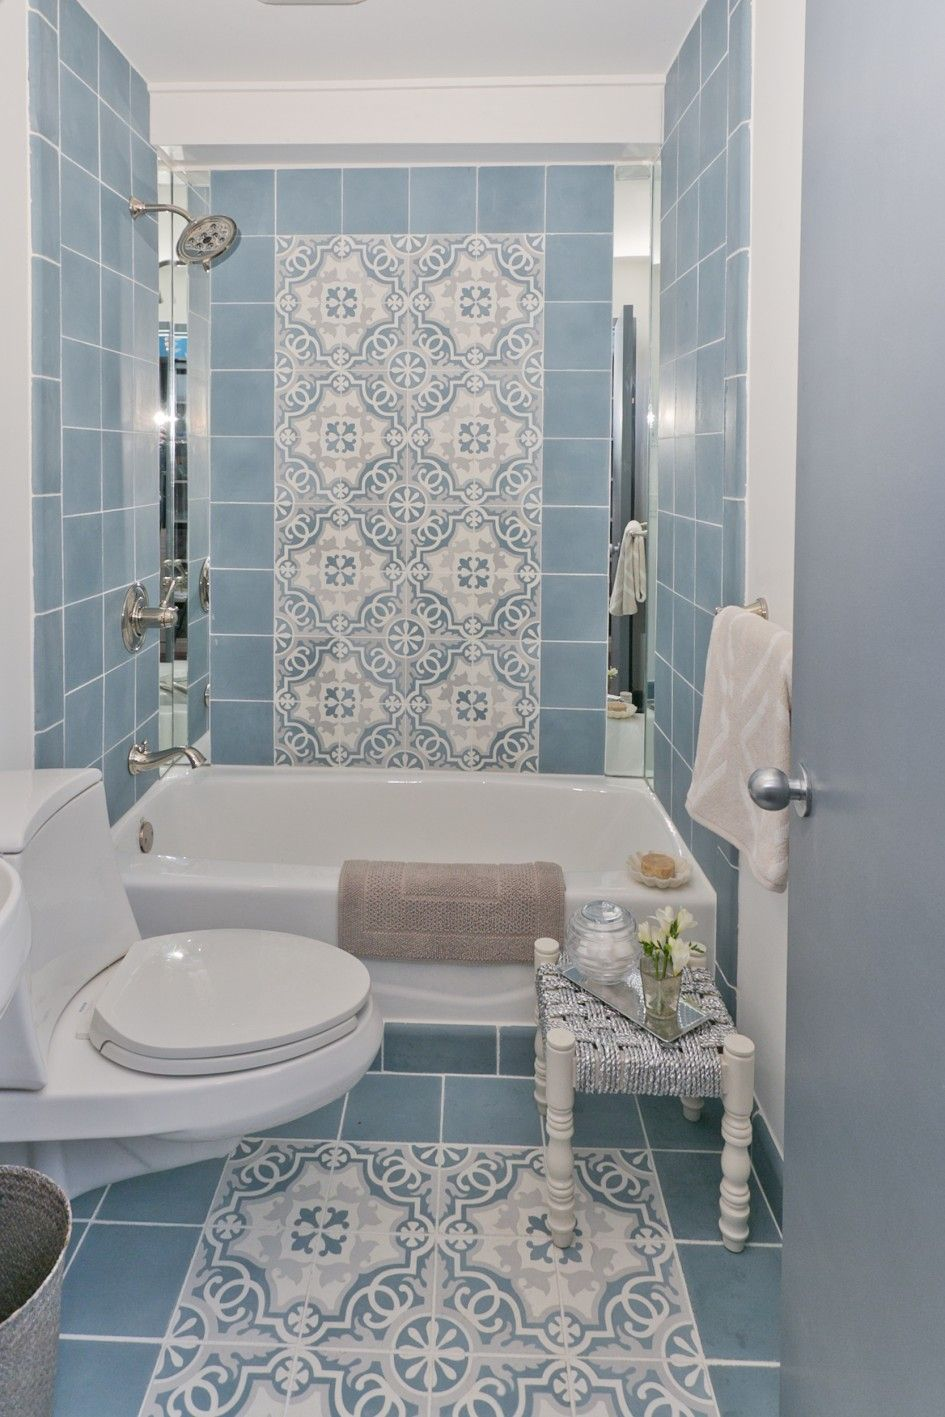 Photo Album Gallery  Vintage Blue Bathroom Tiles Ideas And Pictures Vintage Bathroom Designs Vintage Bathroom Designs